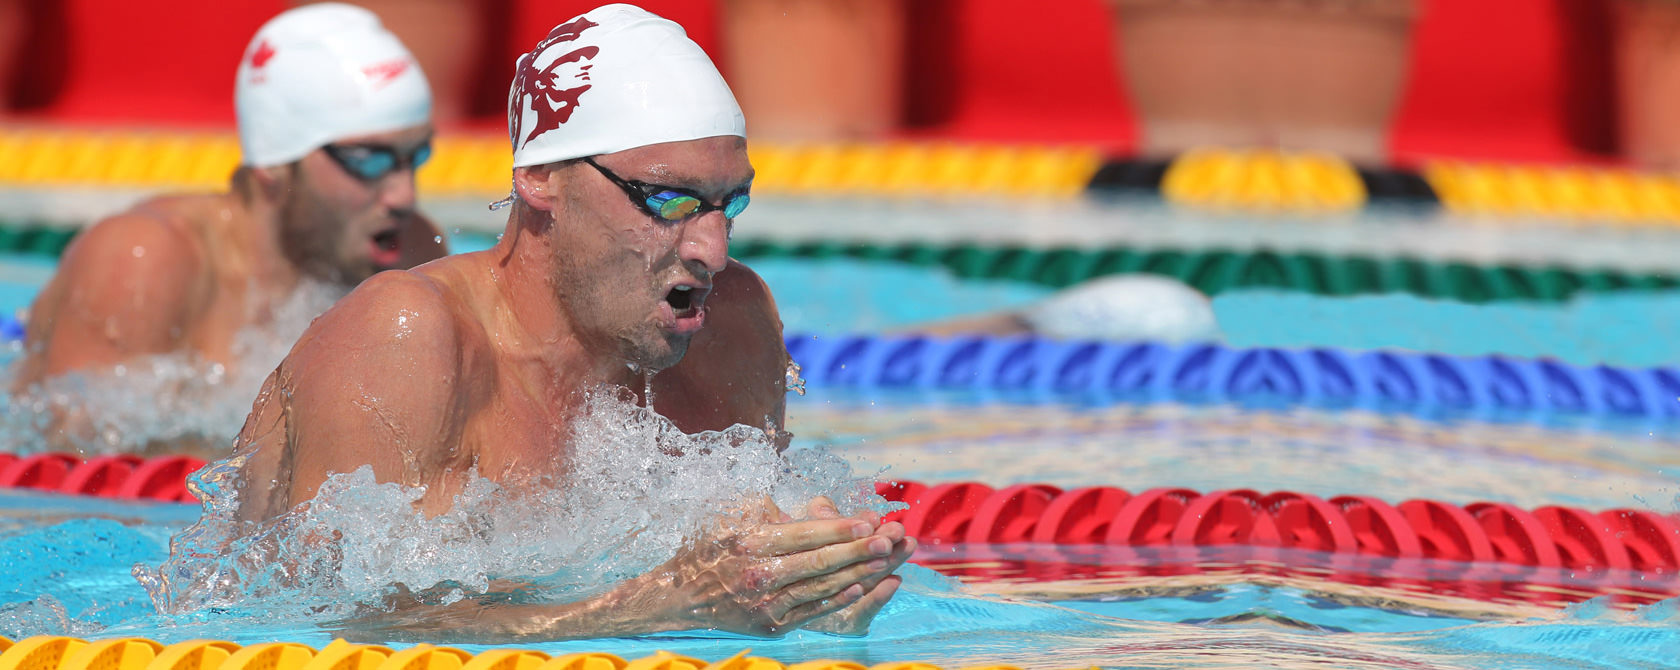 Andrew Bree – Olympian Swimmer